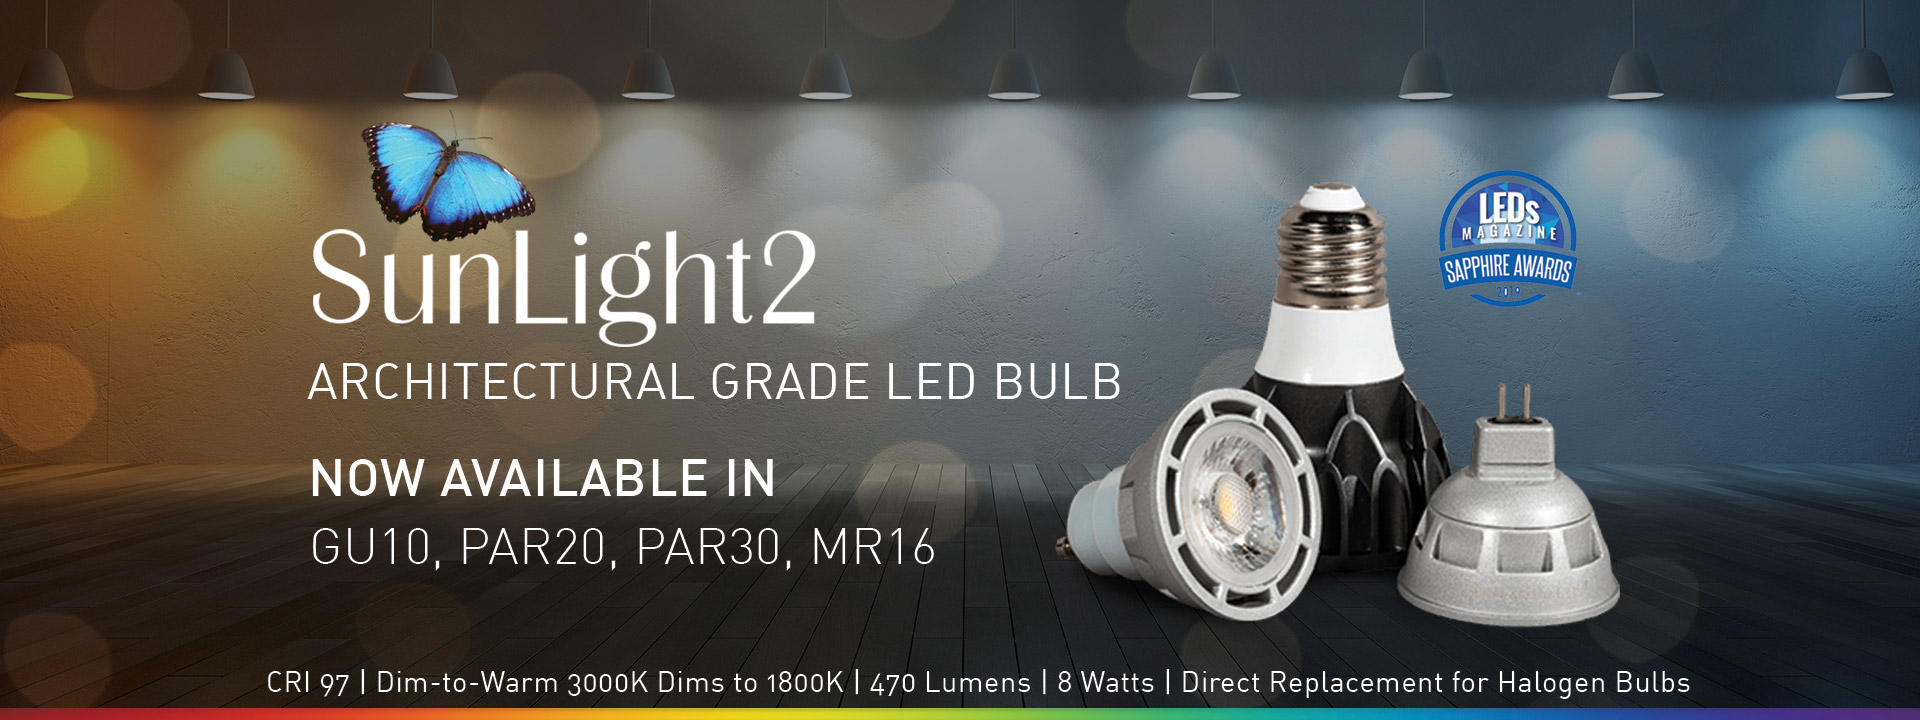 LTF SunLight2 Series High CRI 97 R9 96 Dim to Warm LED GU10 MR16 PAR20 PAR30 Bulb